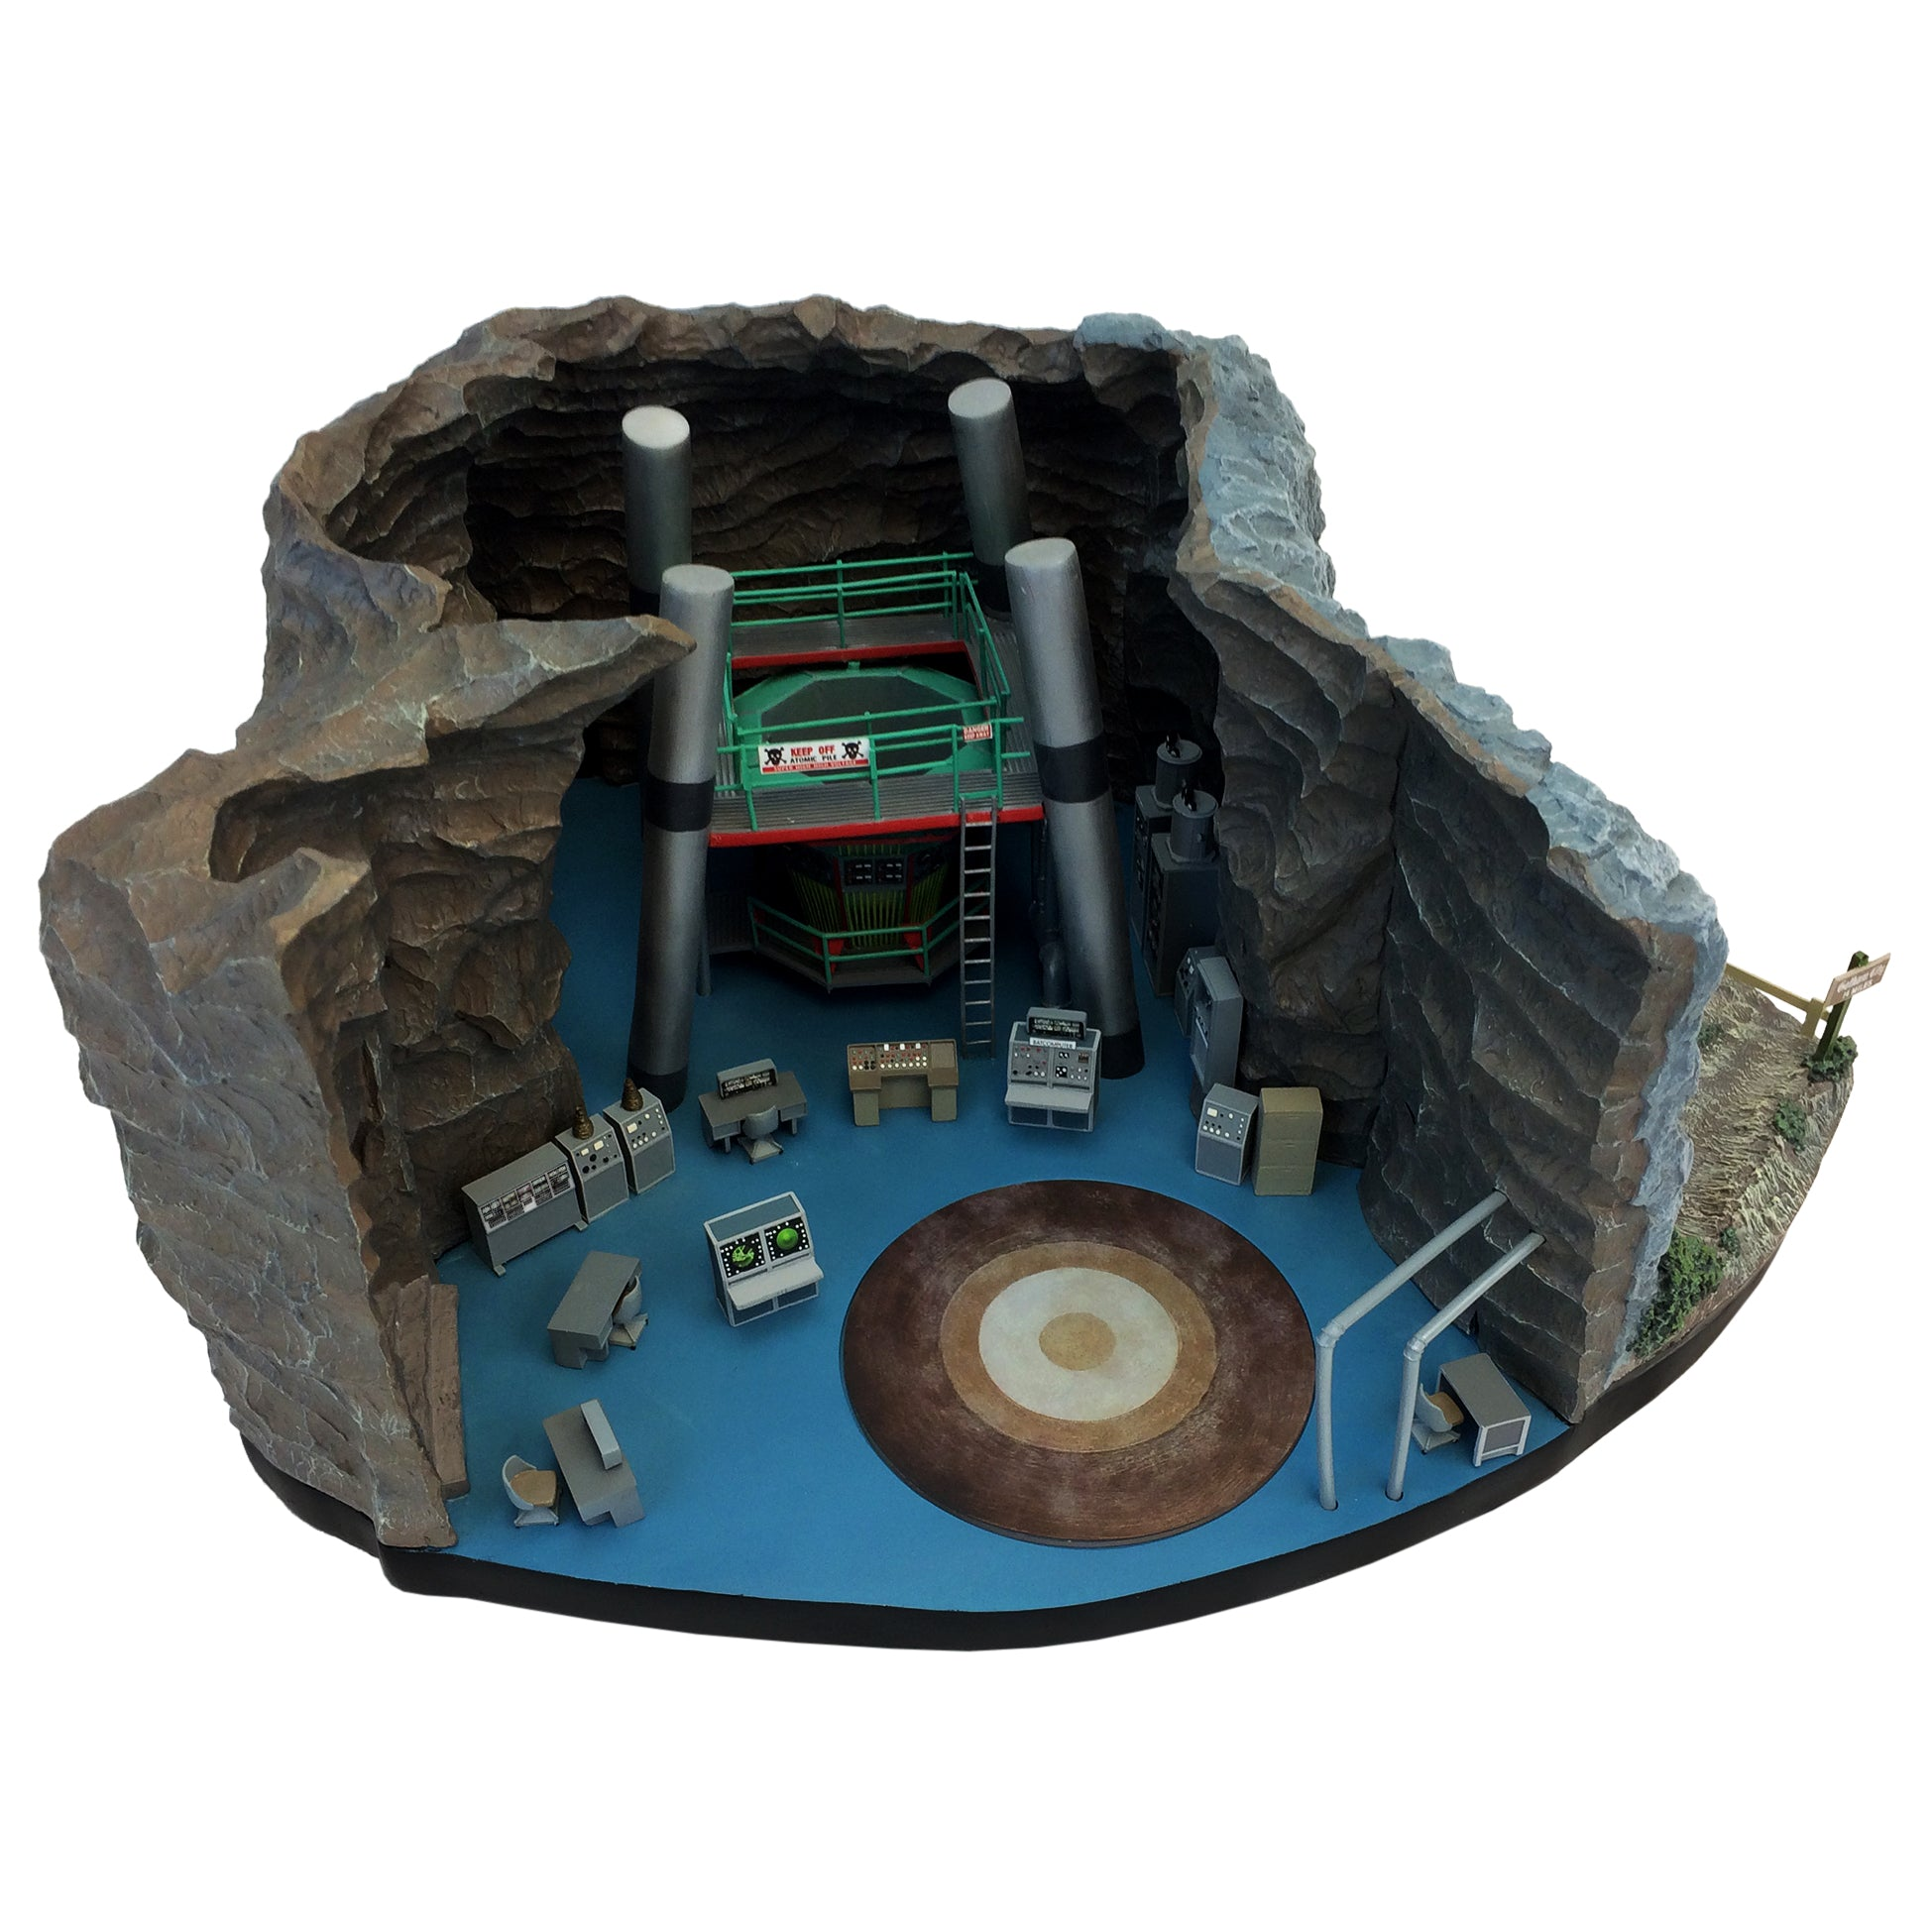 Batman - 1966 TV Series Batcave Desktop Sculpture